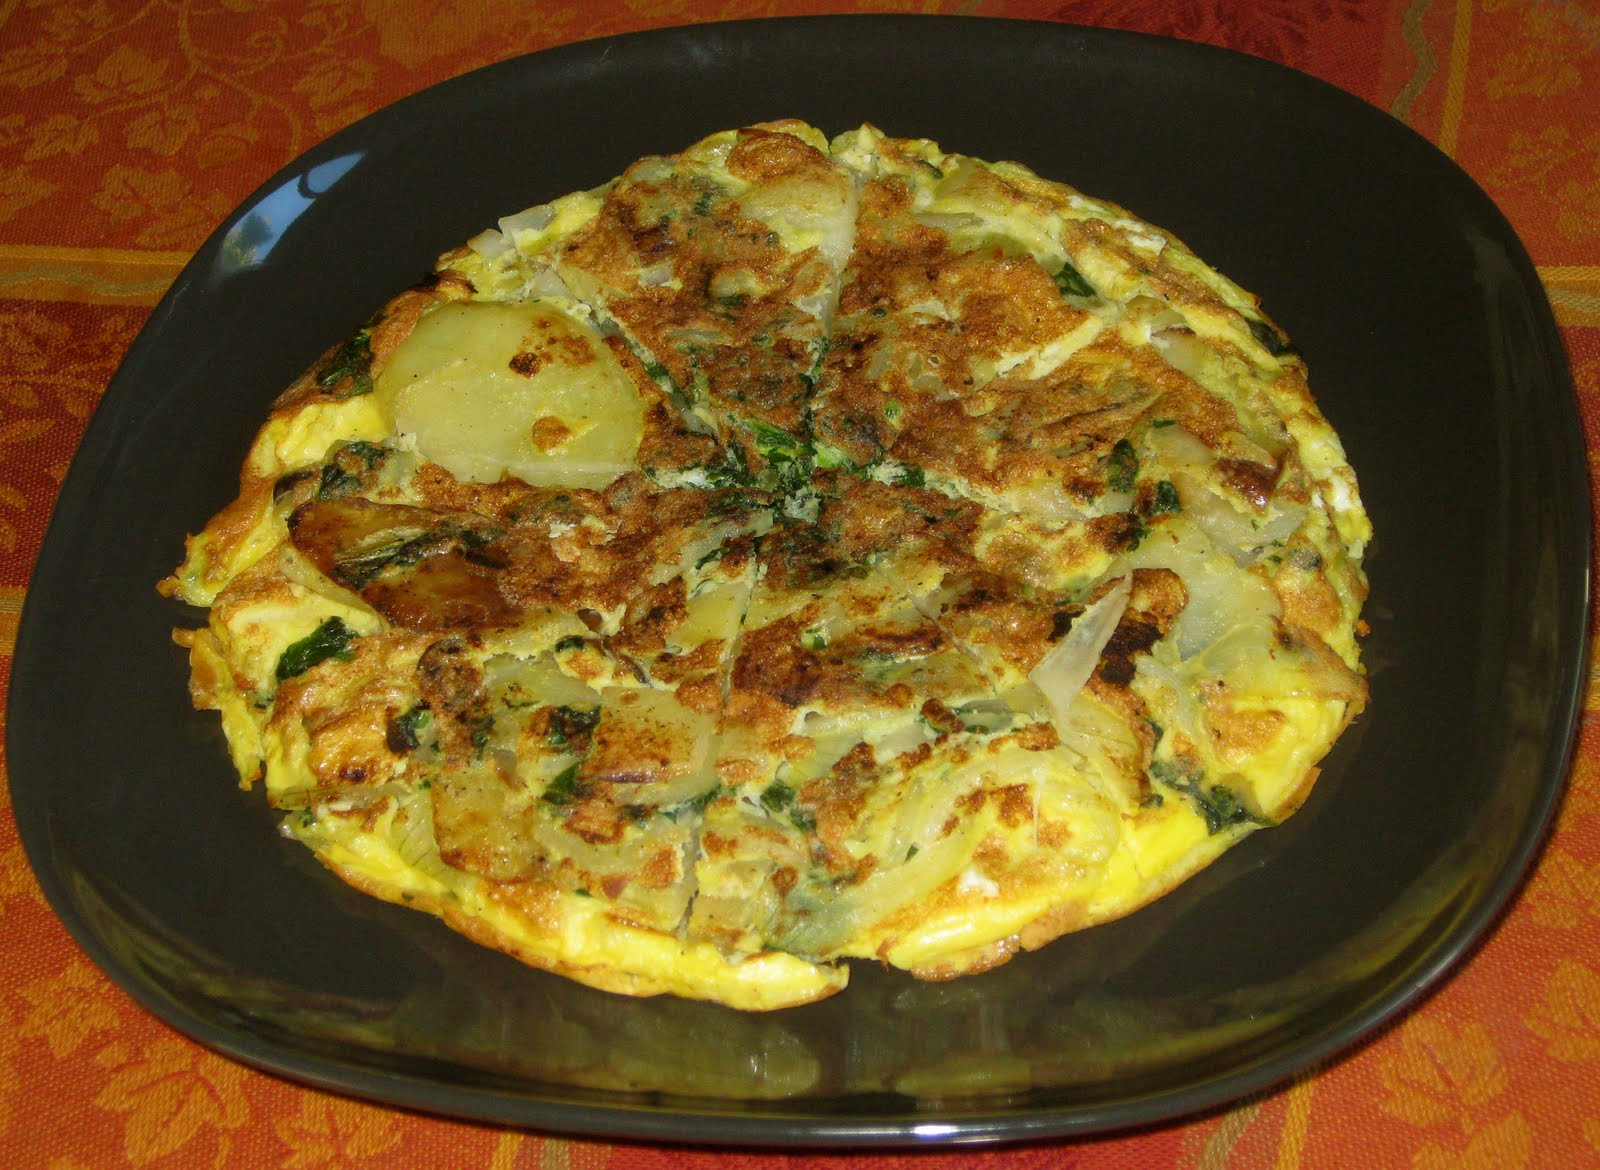 Anup's Kitchen: Potato and Spinach Frittata